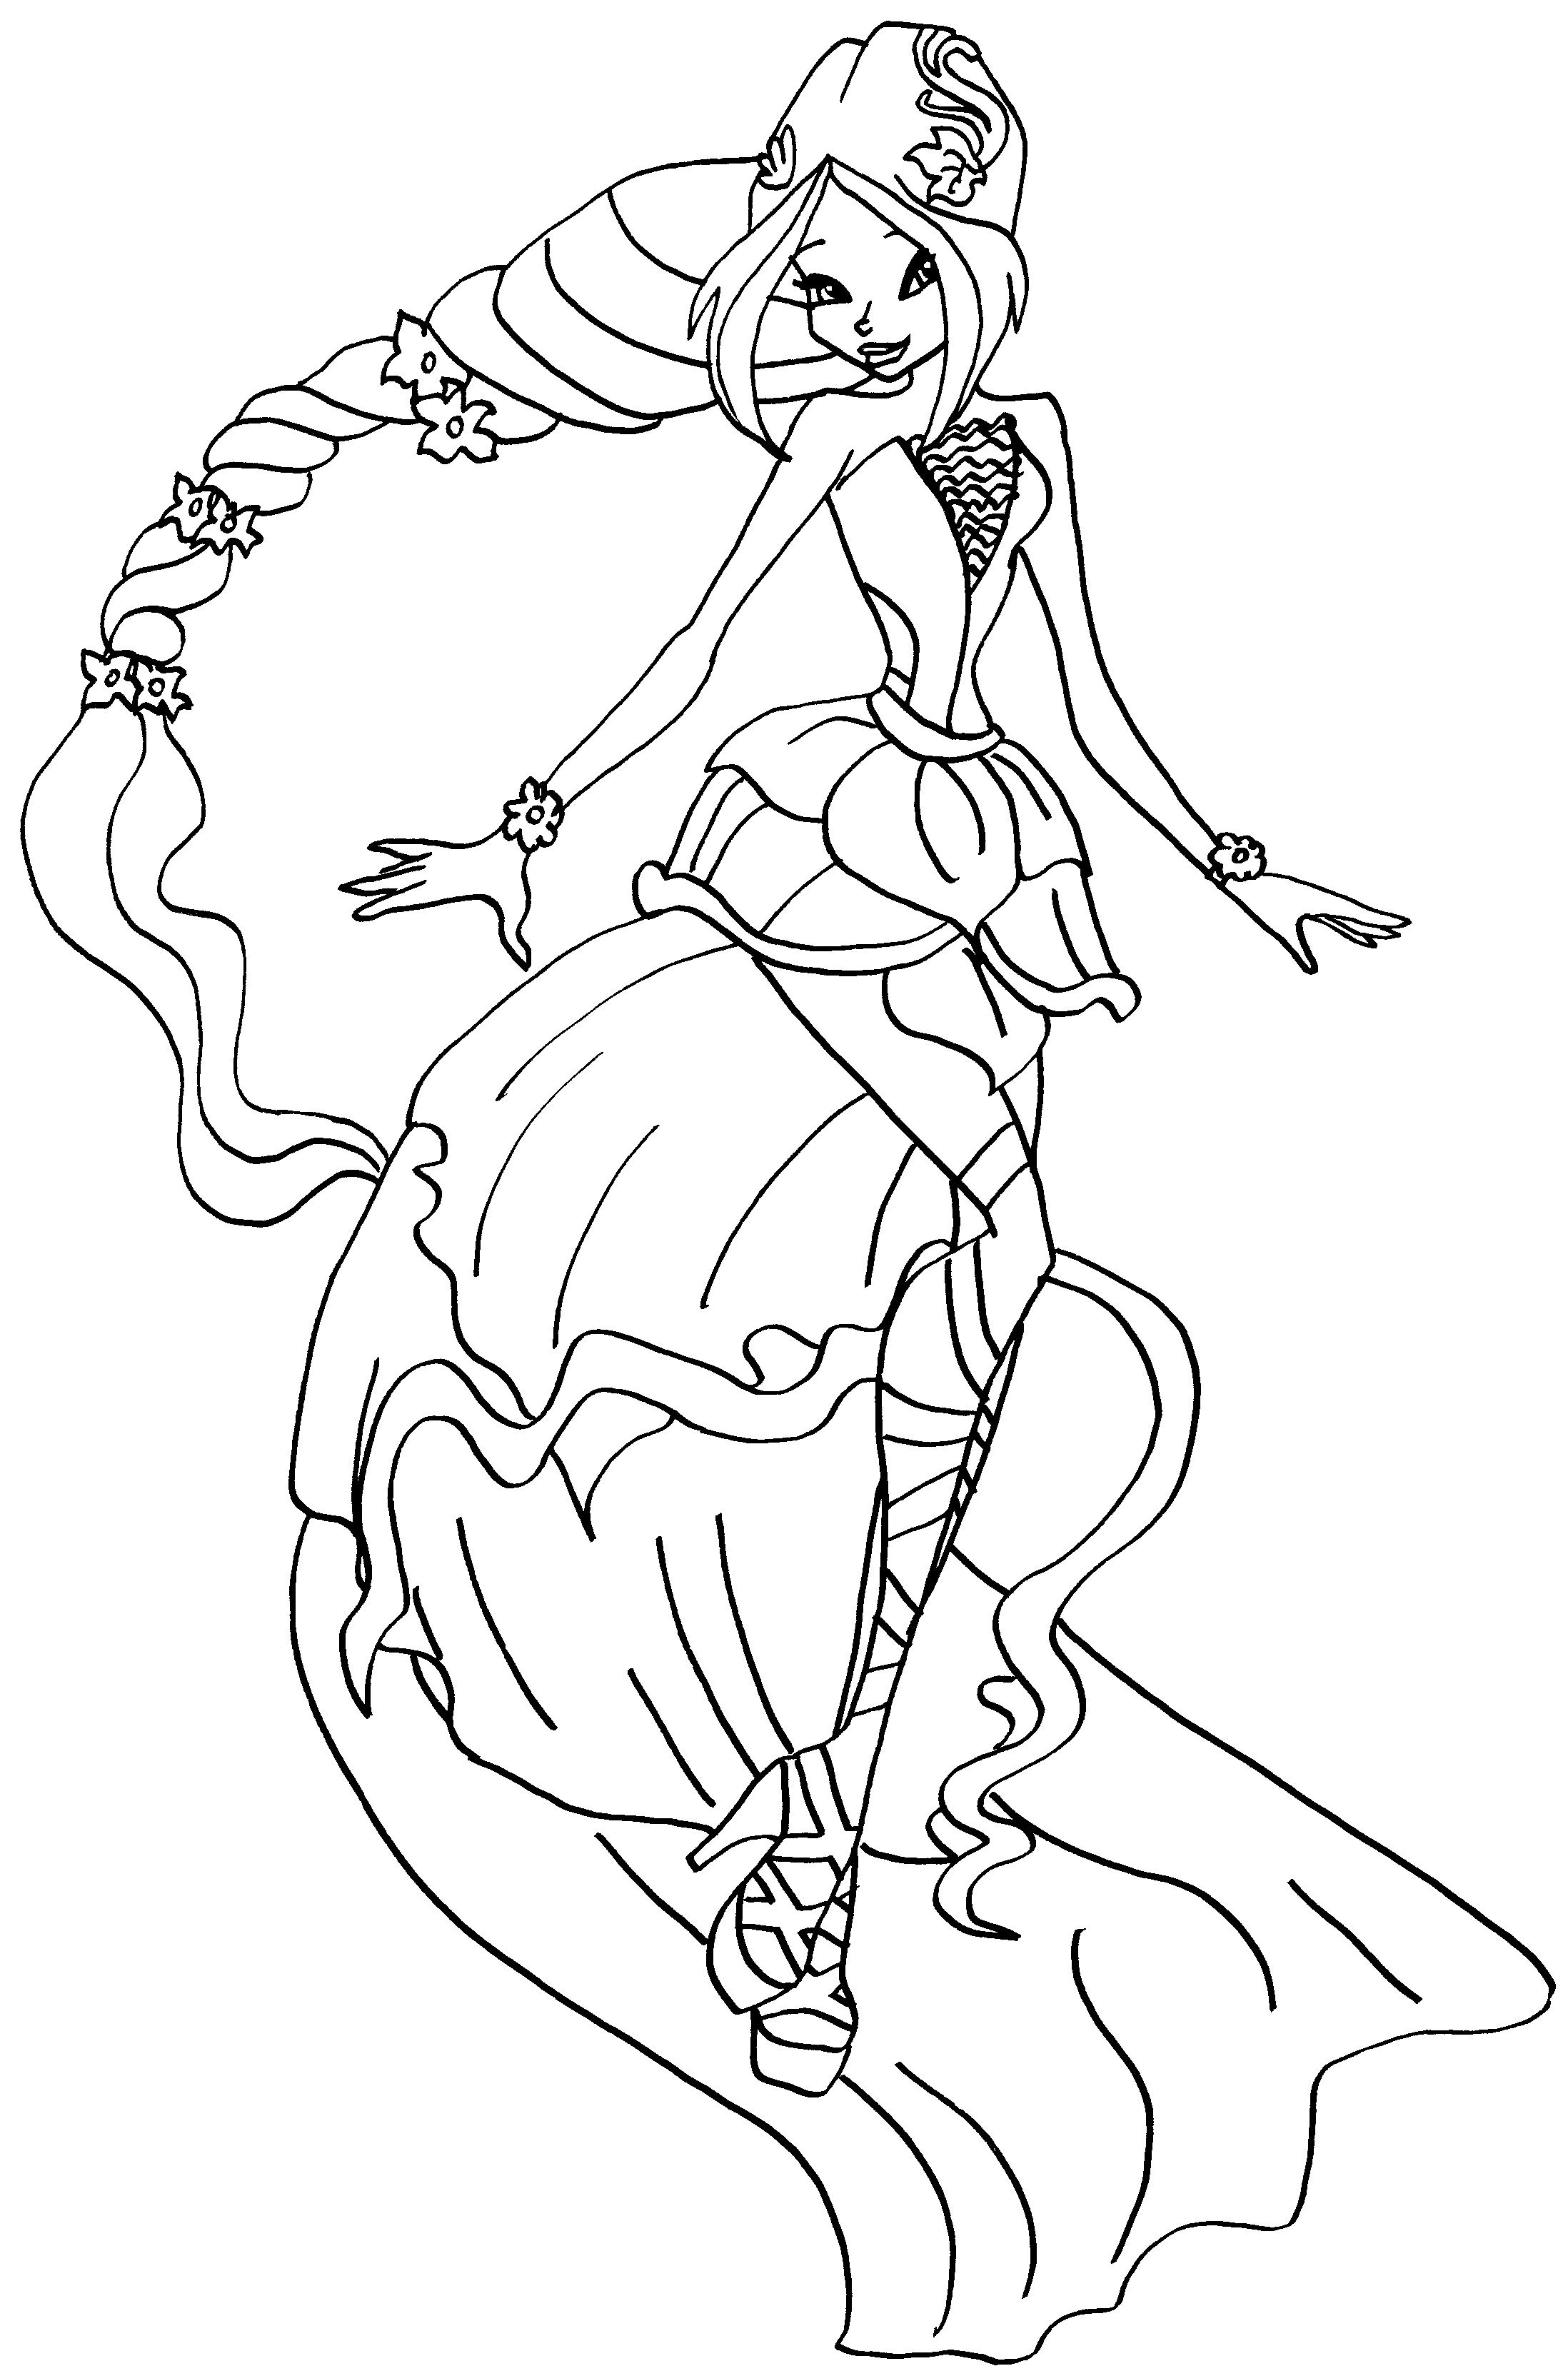 Winx Princess Coloring Pages Winx Princess Coloring Pages